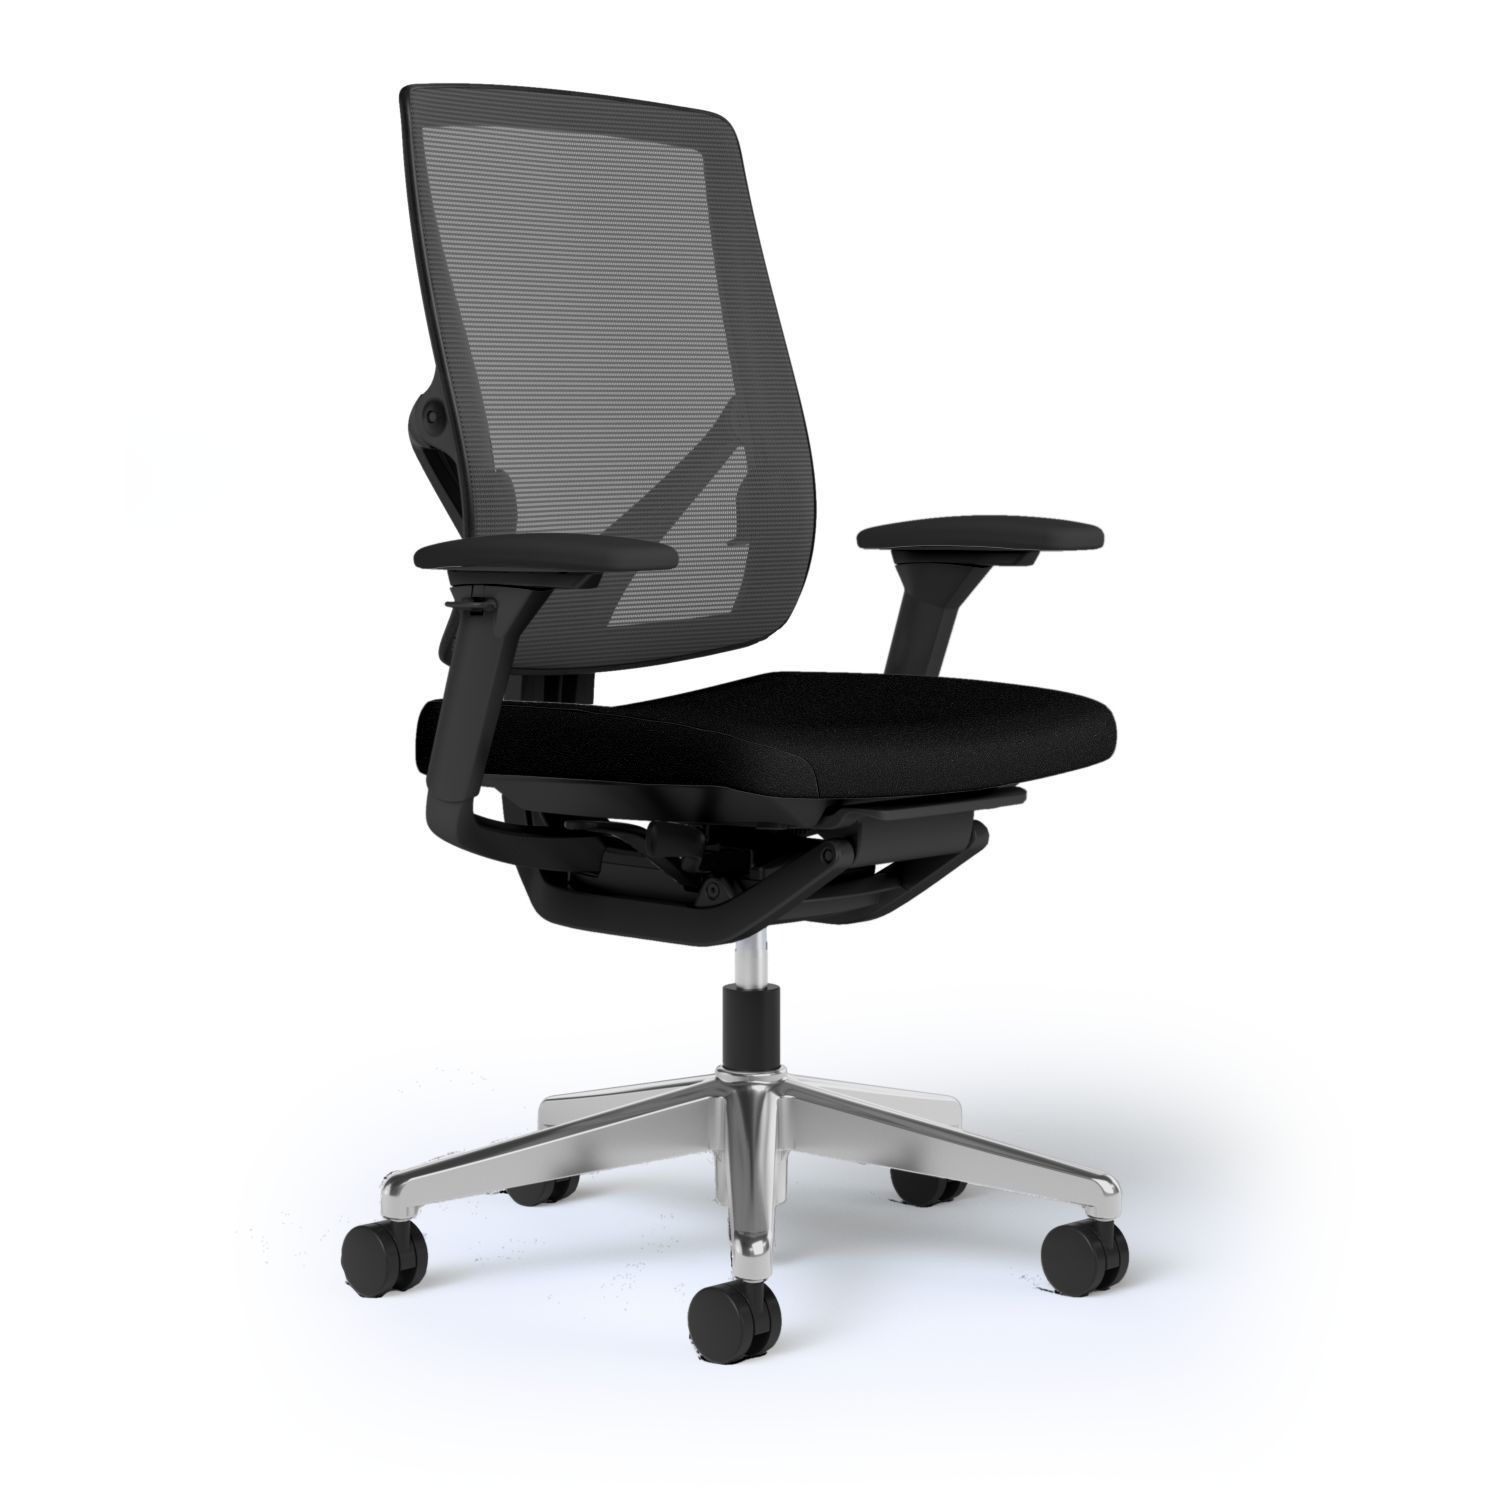 allsteel's relate taskchair. relate work chairs offer the perfect